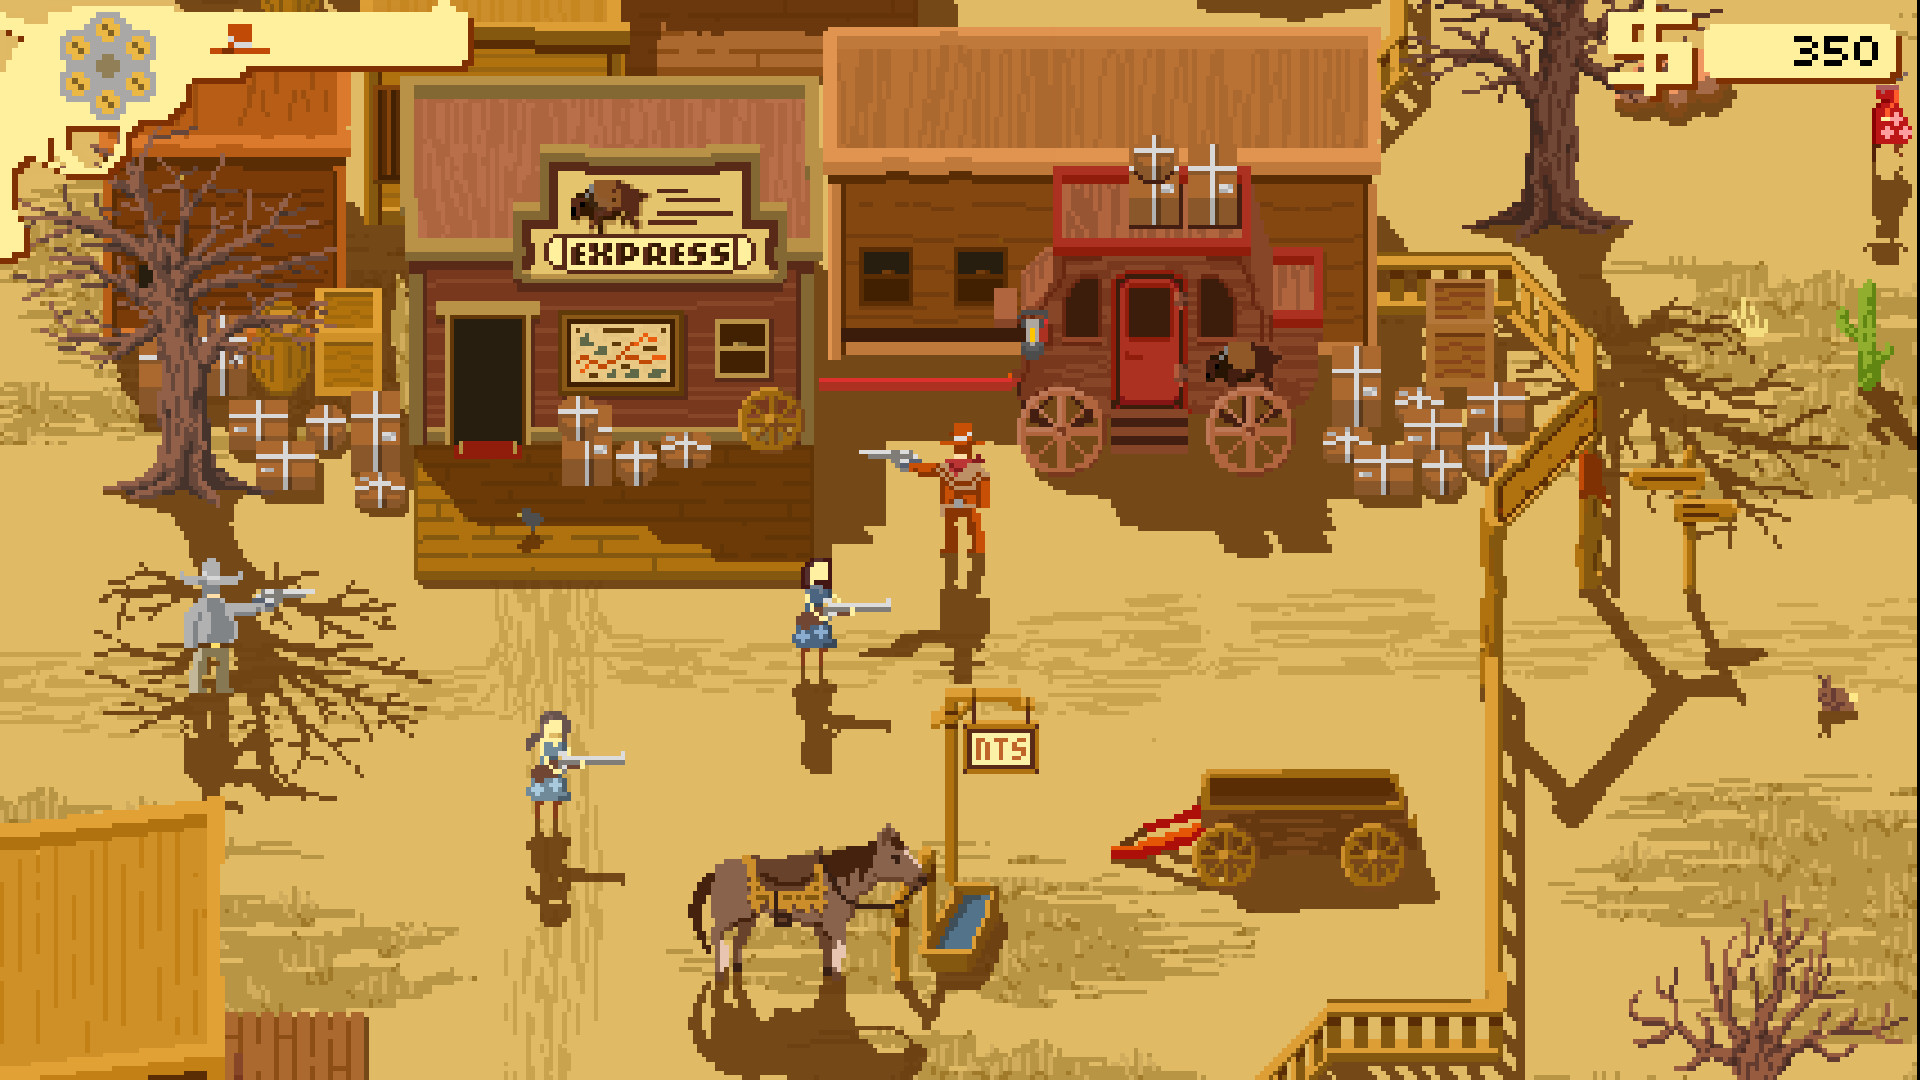 Several small human figures in a western town in the desert.